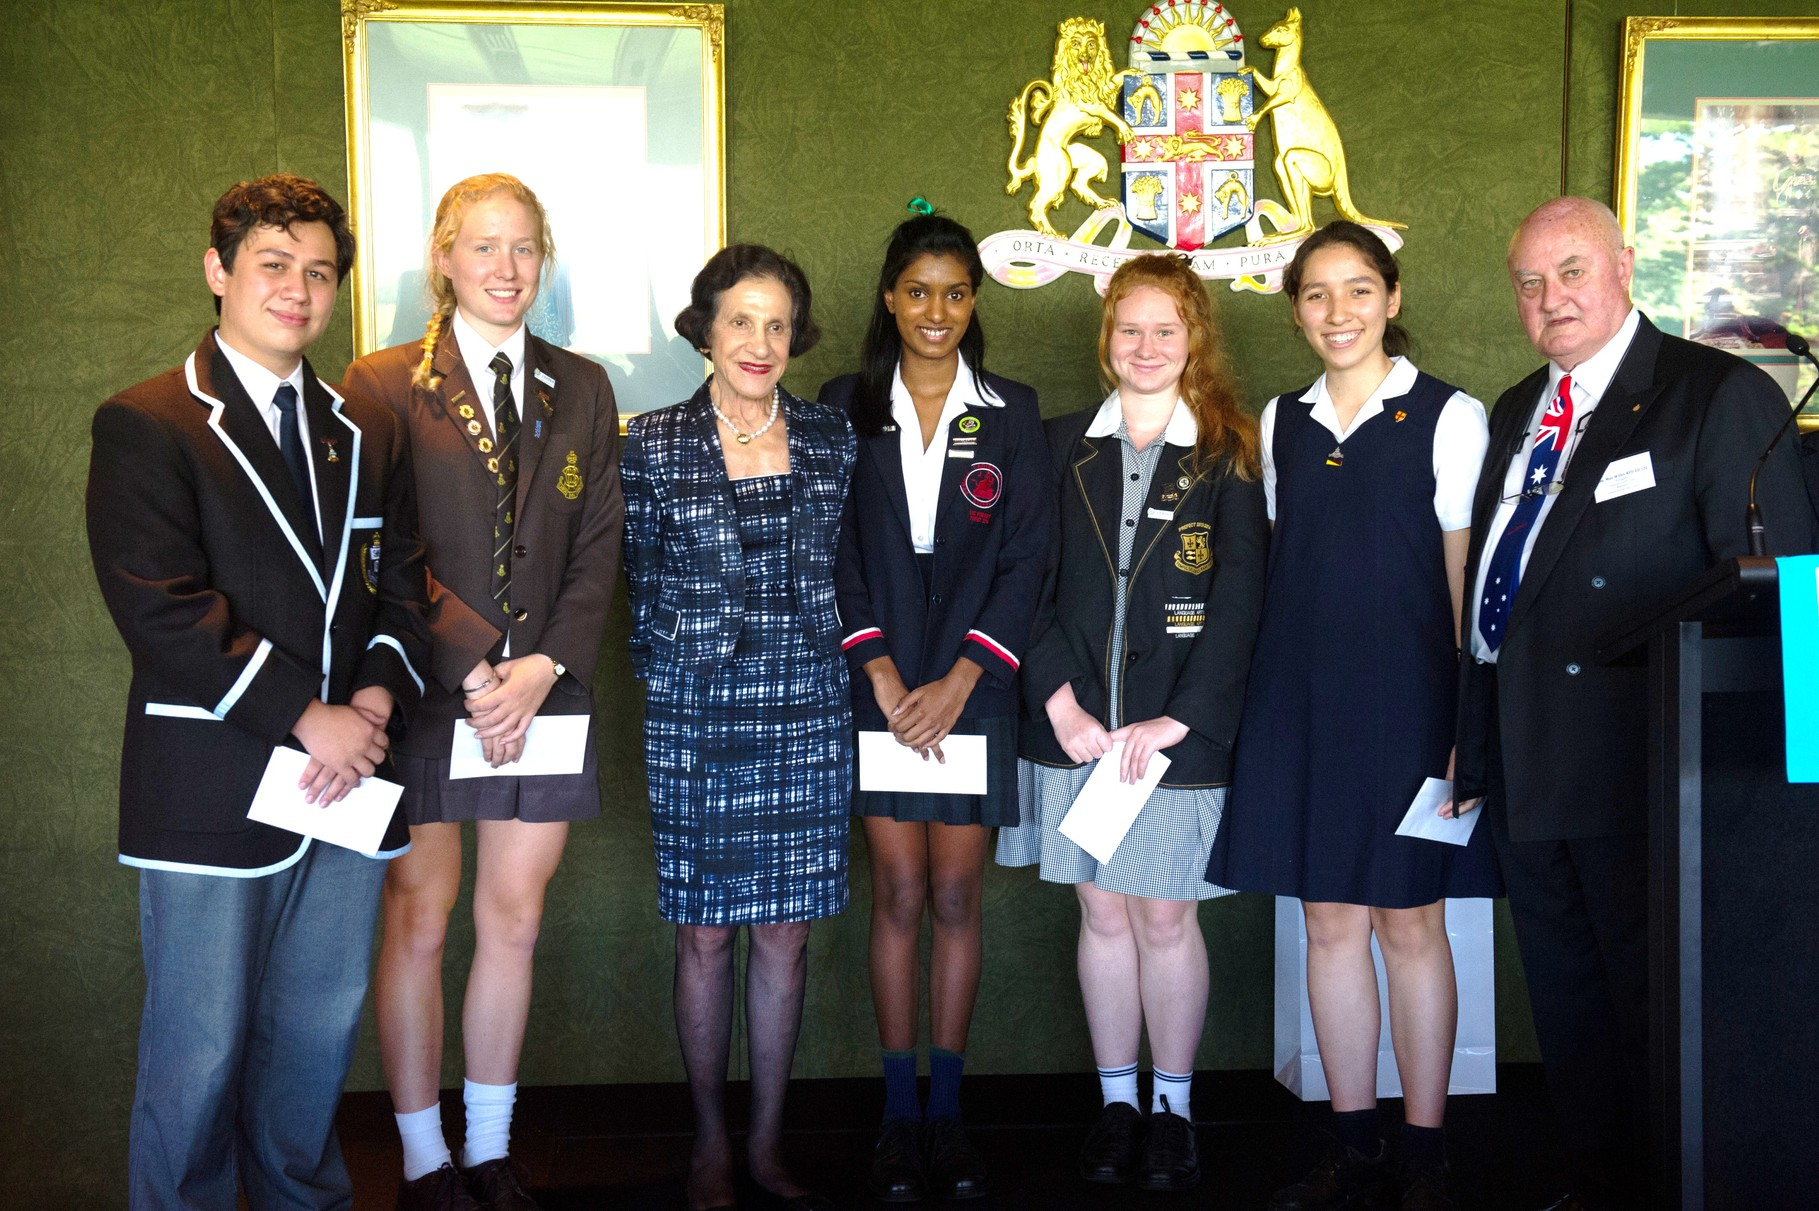 Her Excellency presents the debate students with their prizes. The winning team were the Archdale Representative Schools Team